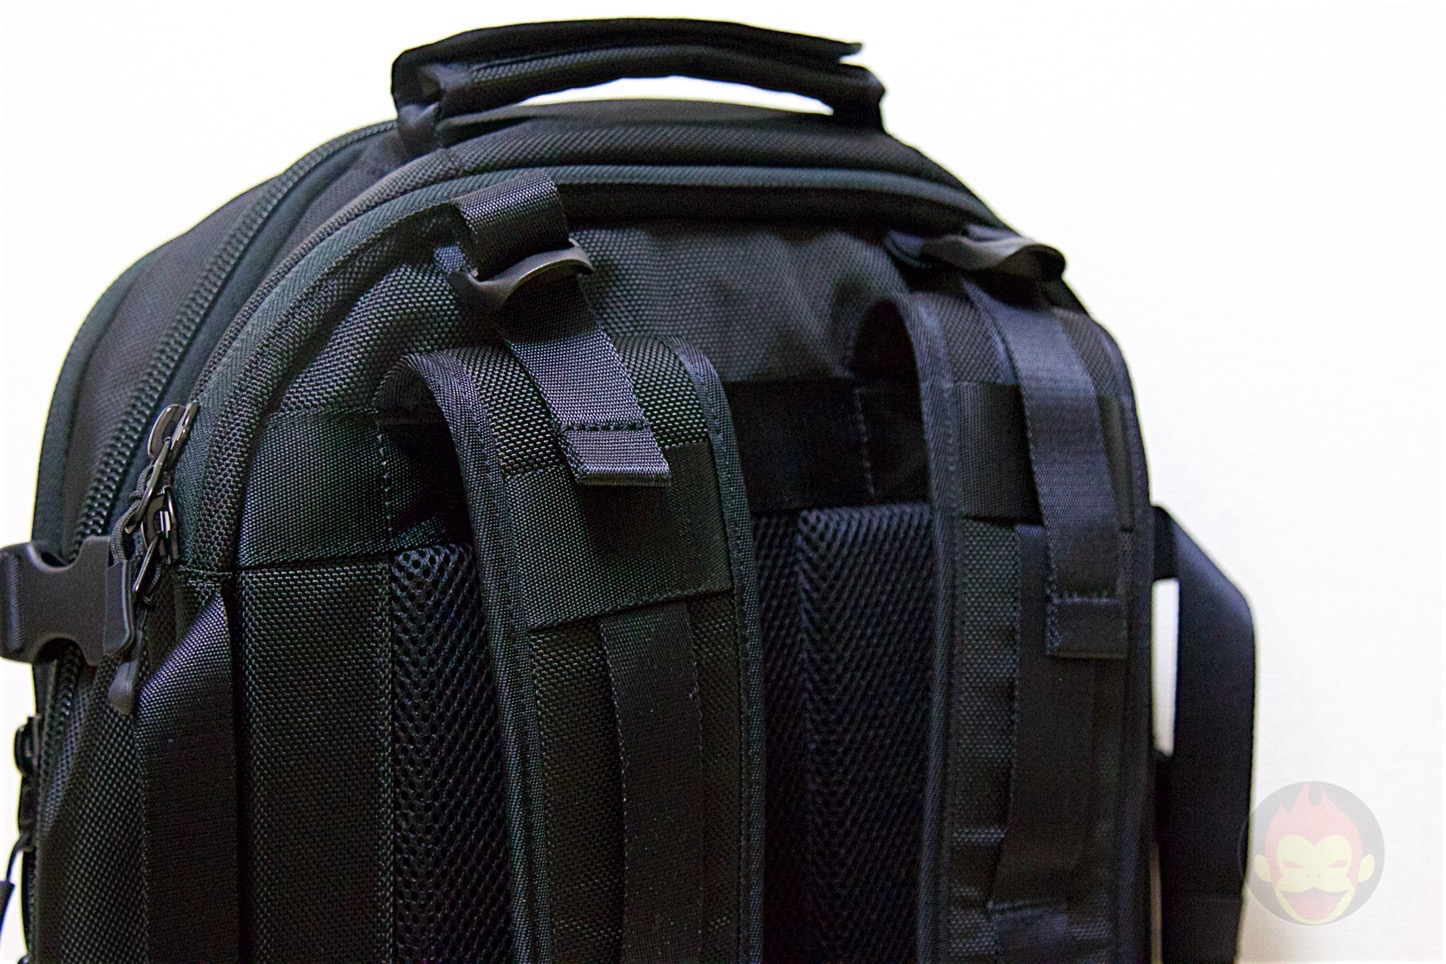 Aer-Travel-BackPack-on-Kickstarter-12.jpg